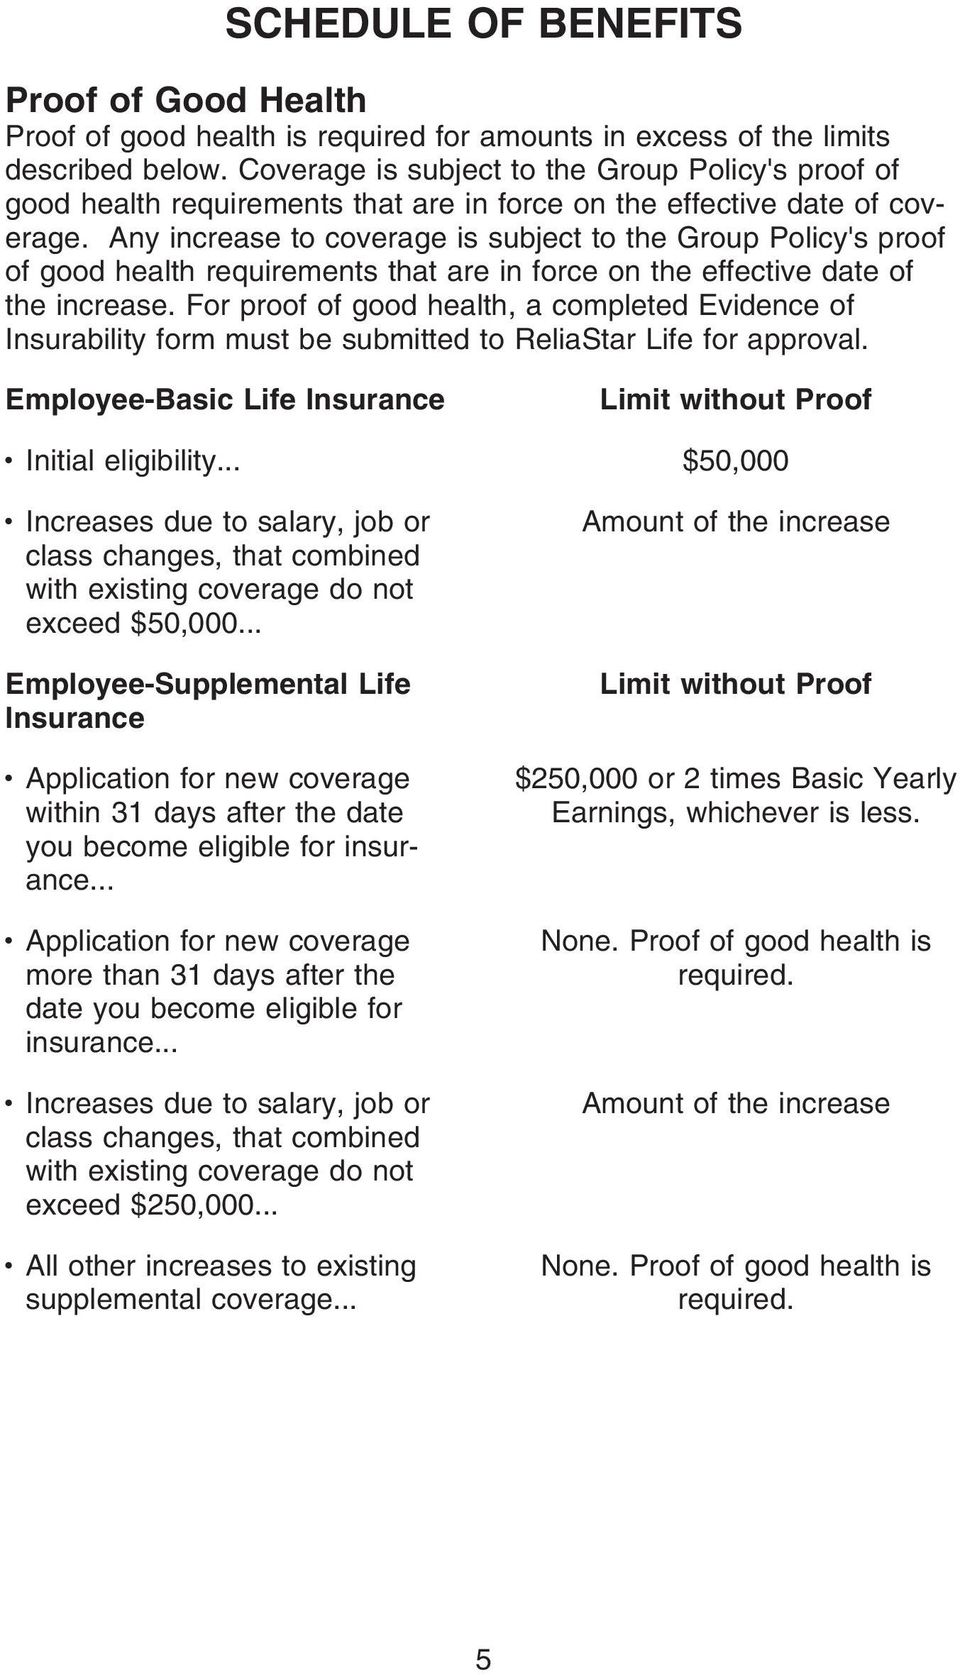 Any increase to coverage is subject to the Group Policy's proof of good health requirements that are in force on the effective date of the increase.